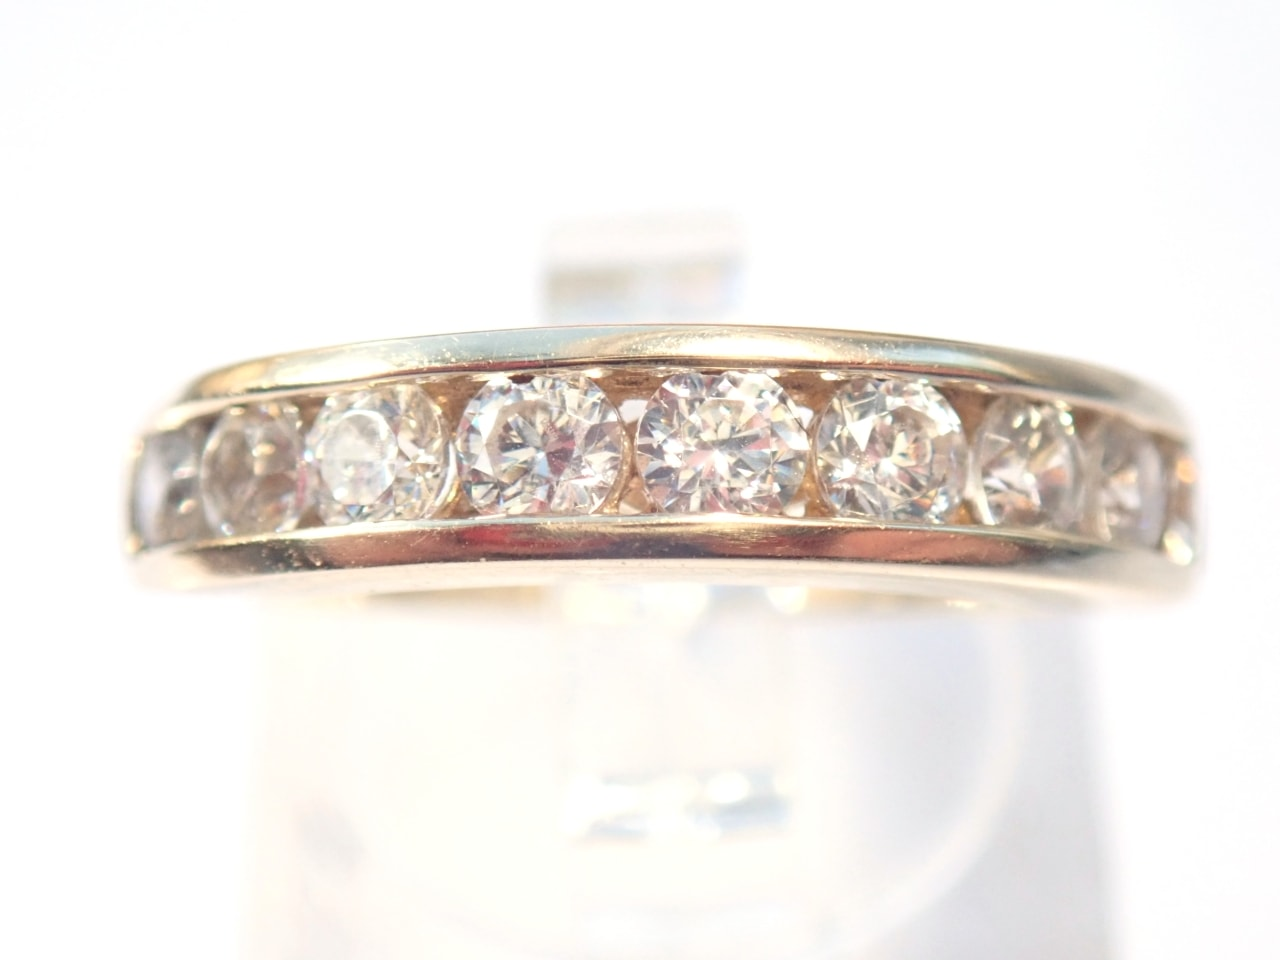 9ct Gold Cubic Zirconia Half Eternity Ring Size L1/2 - 3.2gms